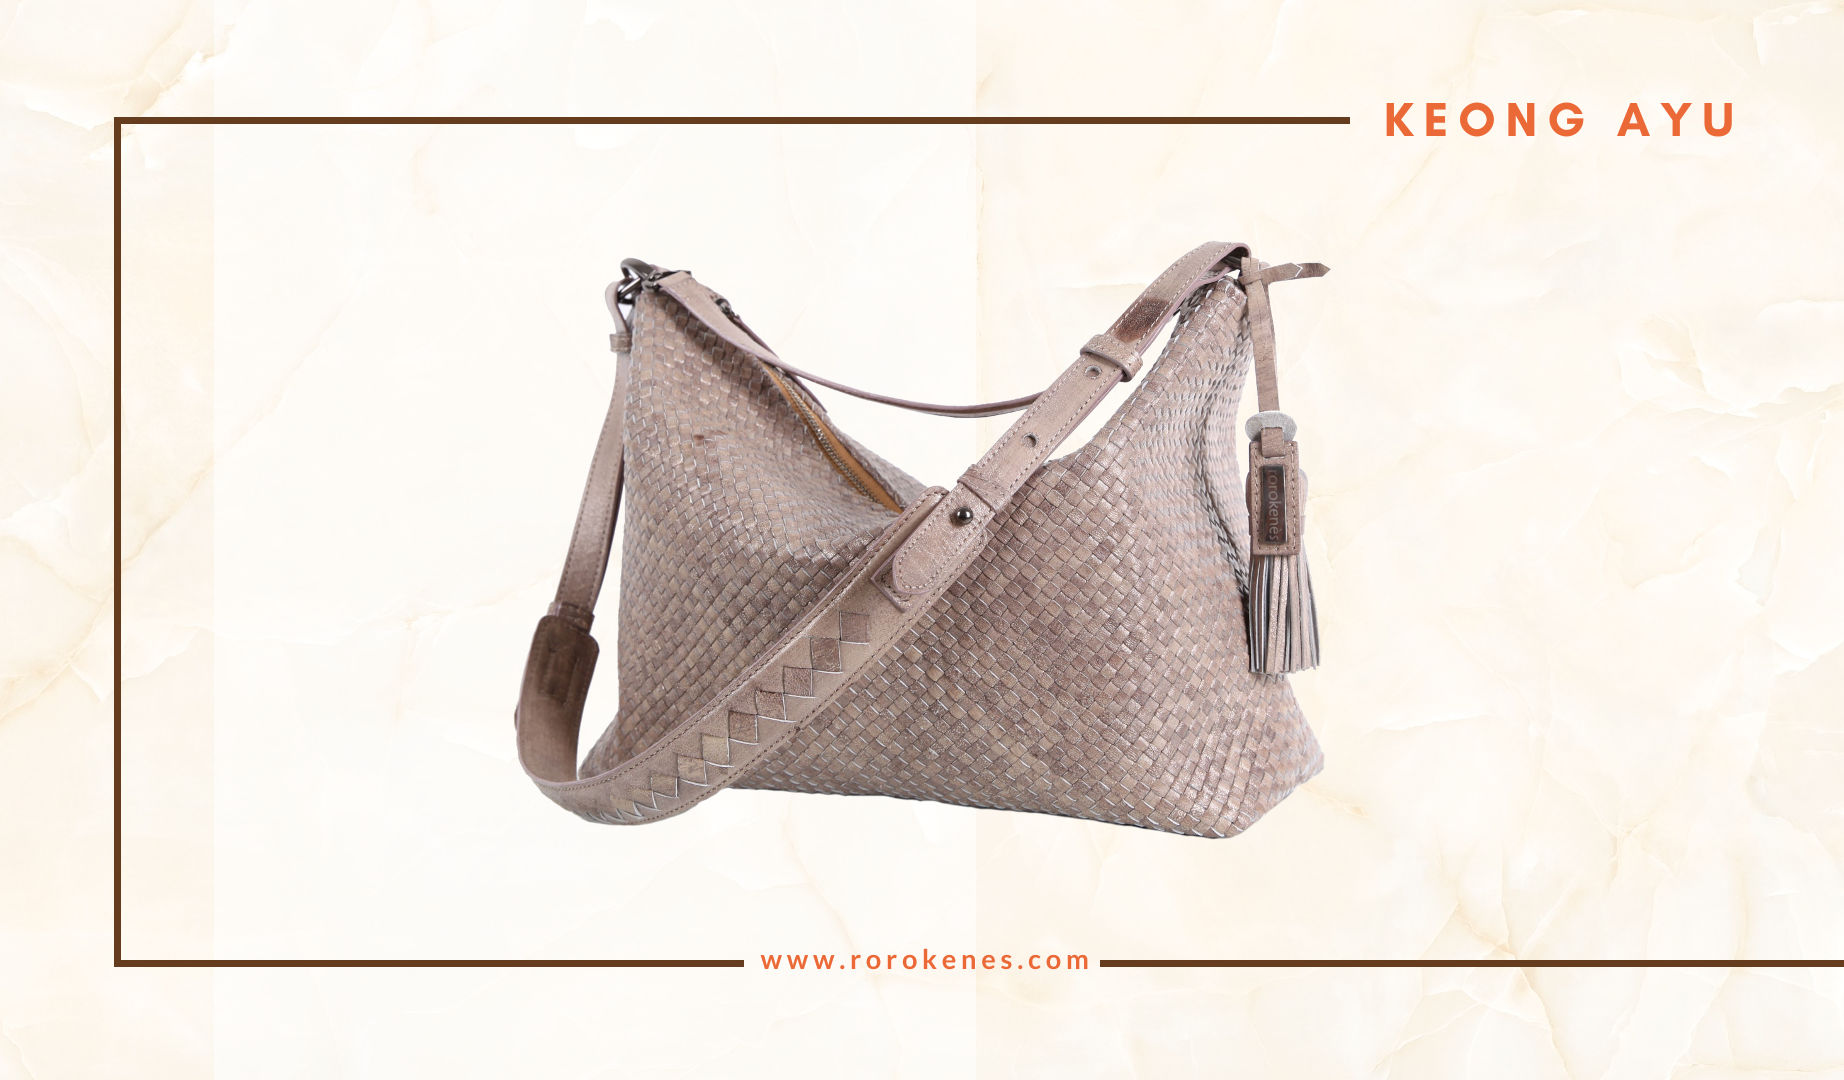 Woven Leather Bag Keong Ayu Rorokenes